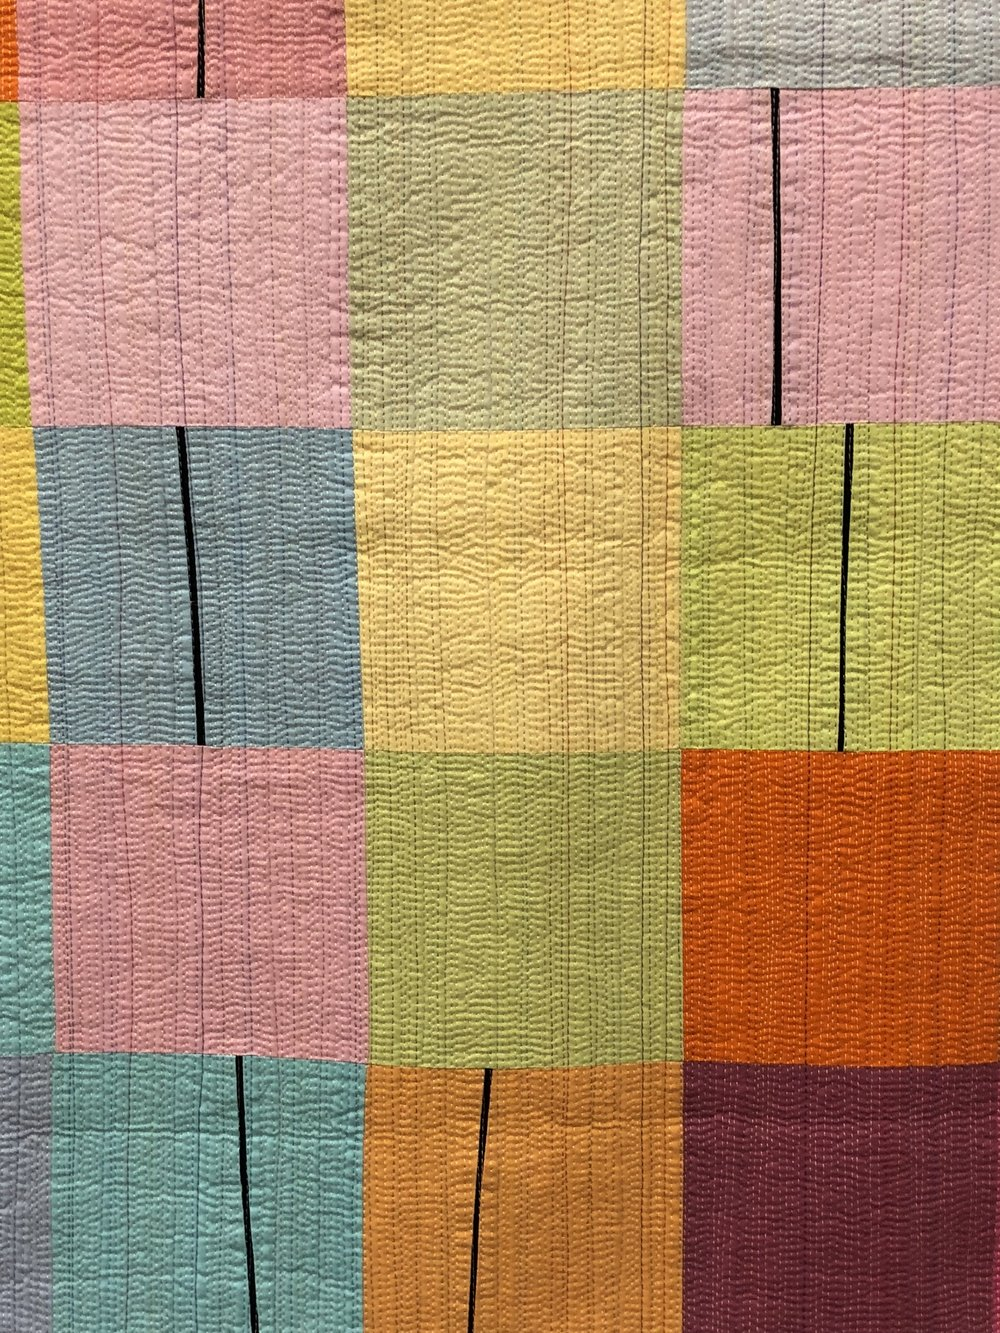 squares and lines quilt detail.jpg